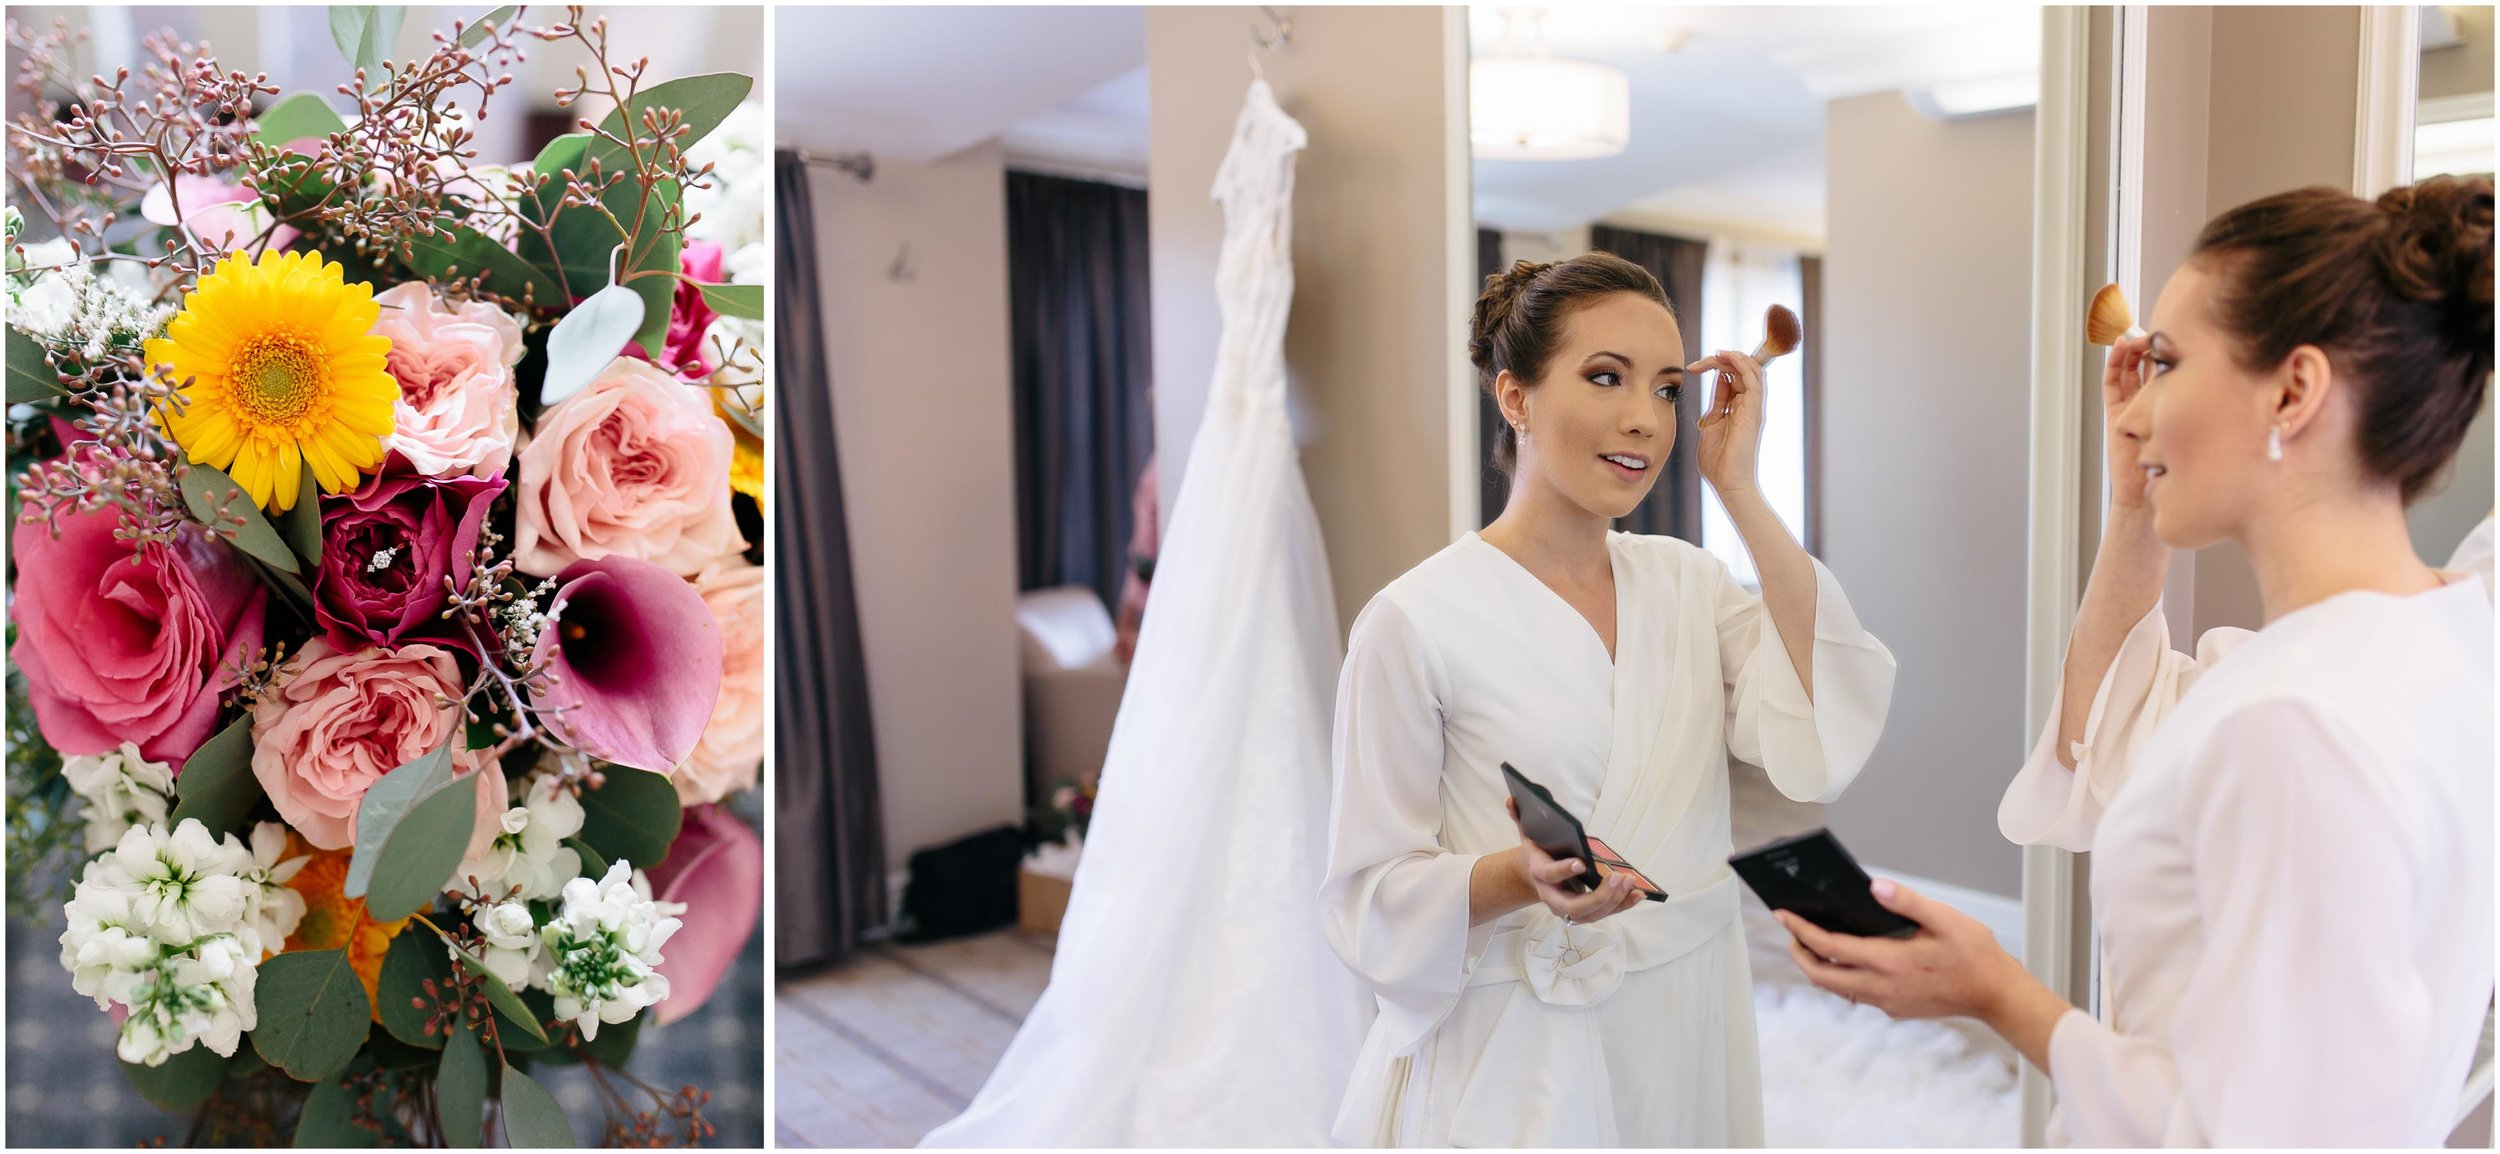 Chic New Hampshire Wedding at Manchester Country Club Bedford - bride and flowers